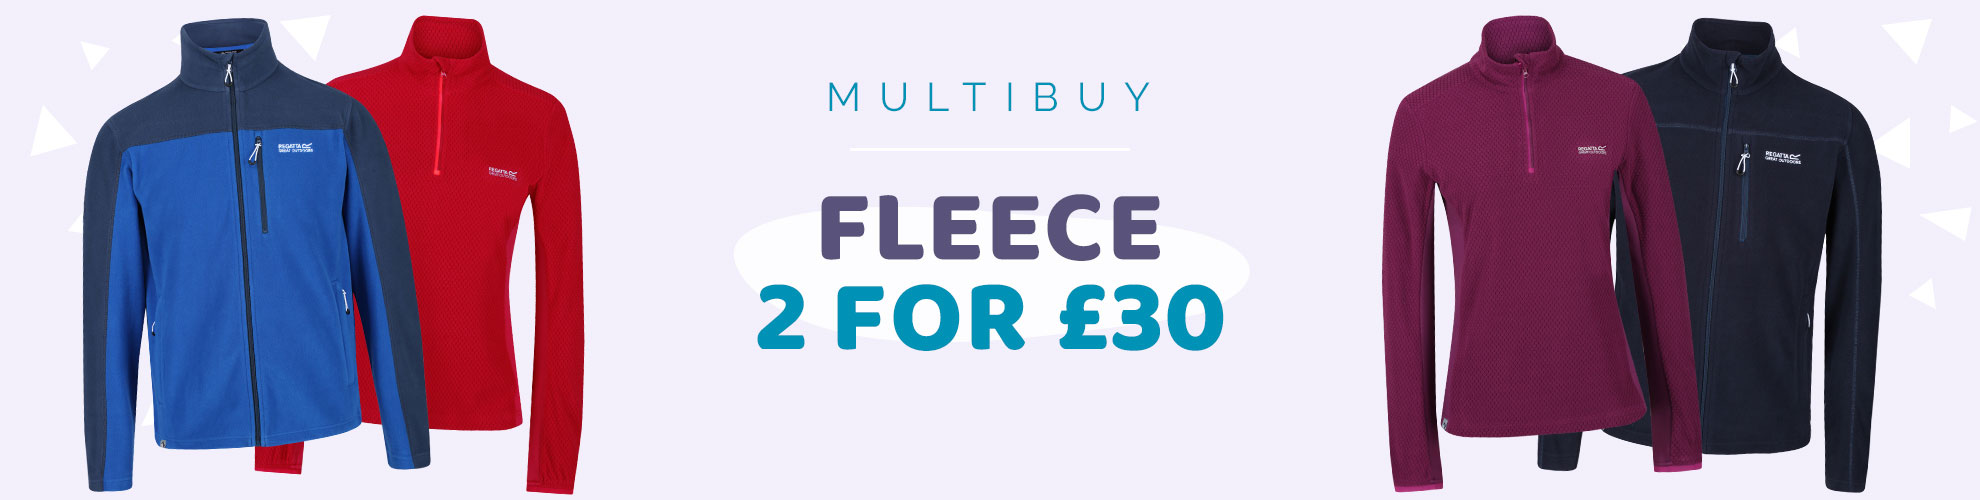 Fleece 2 for £30